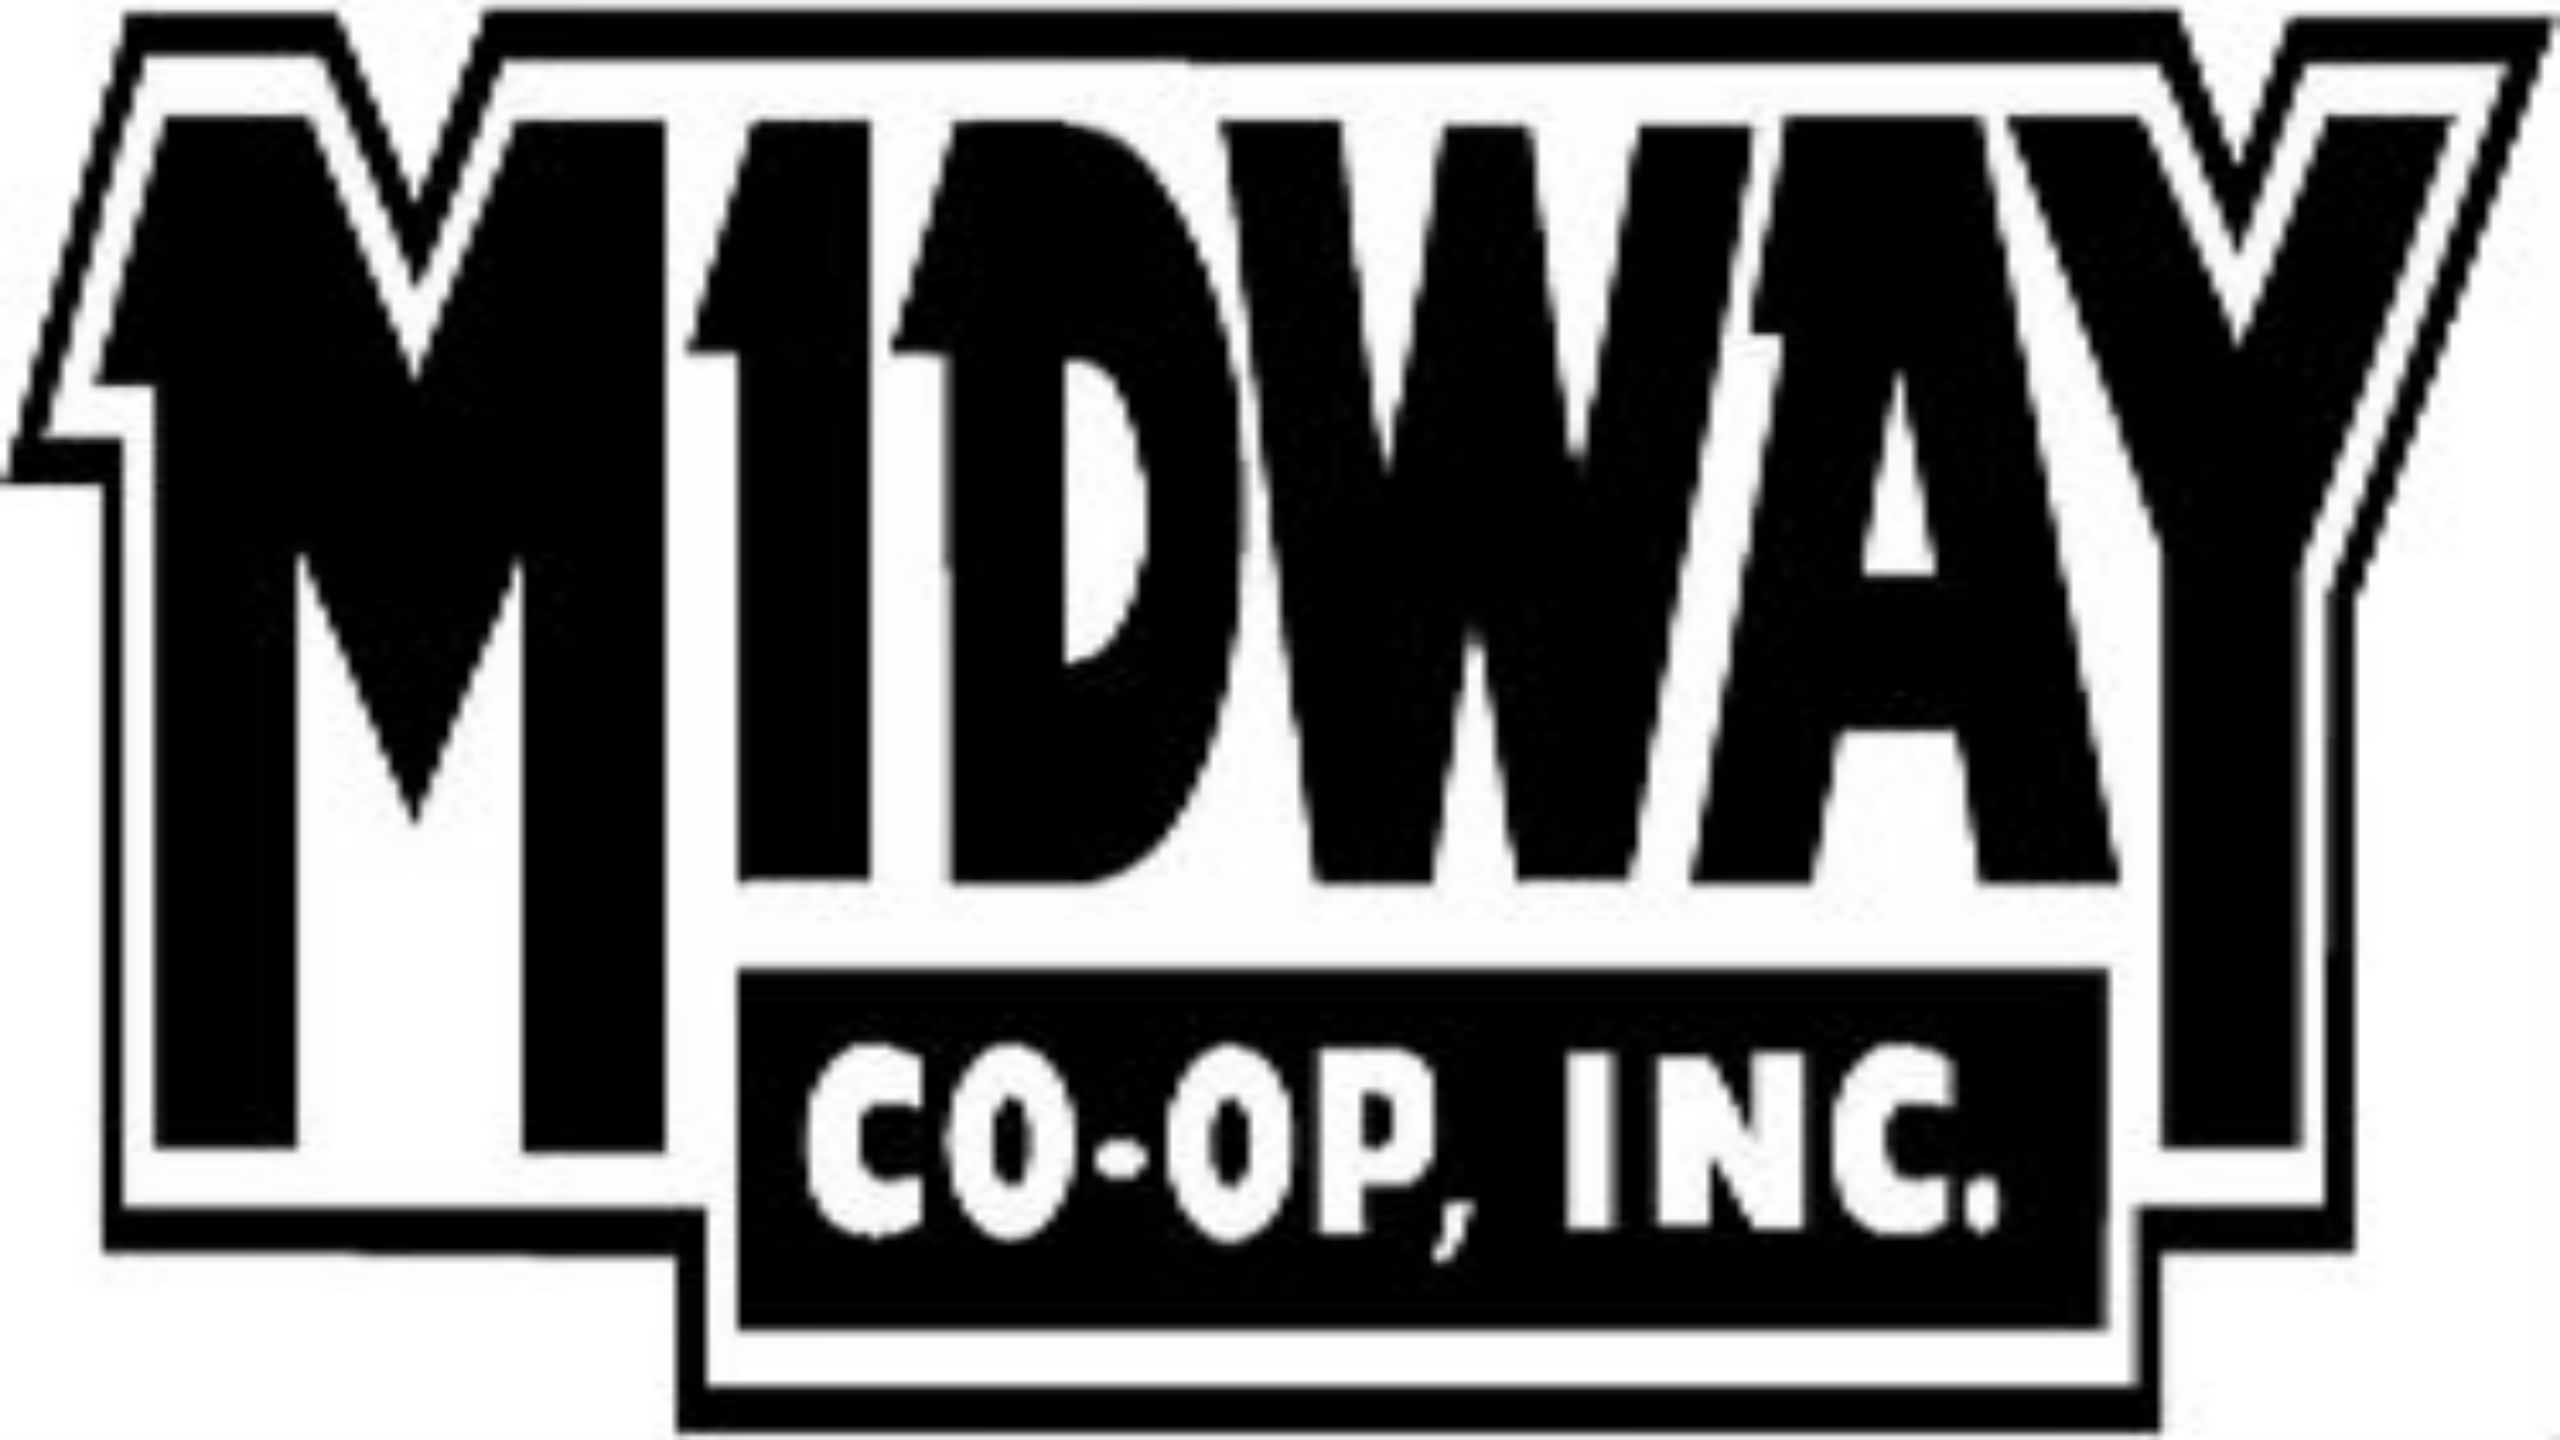 Midway Co-op General Office (@midwaycoop) Cover Image